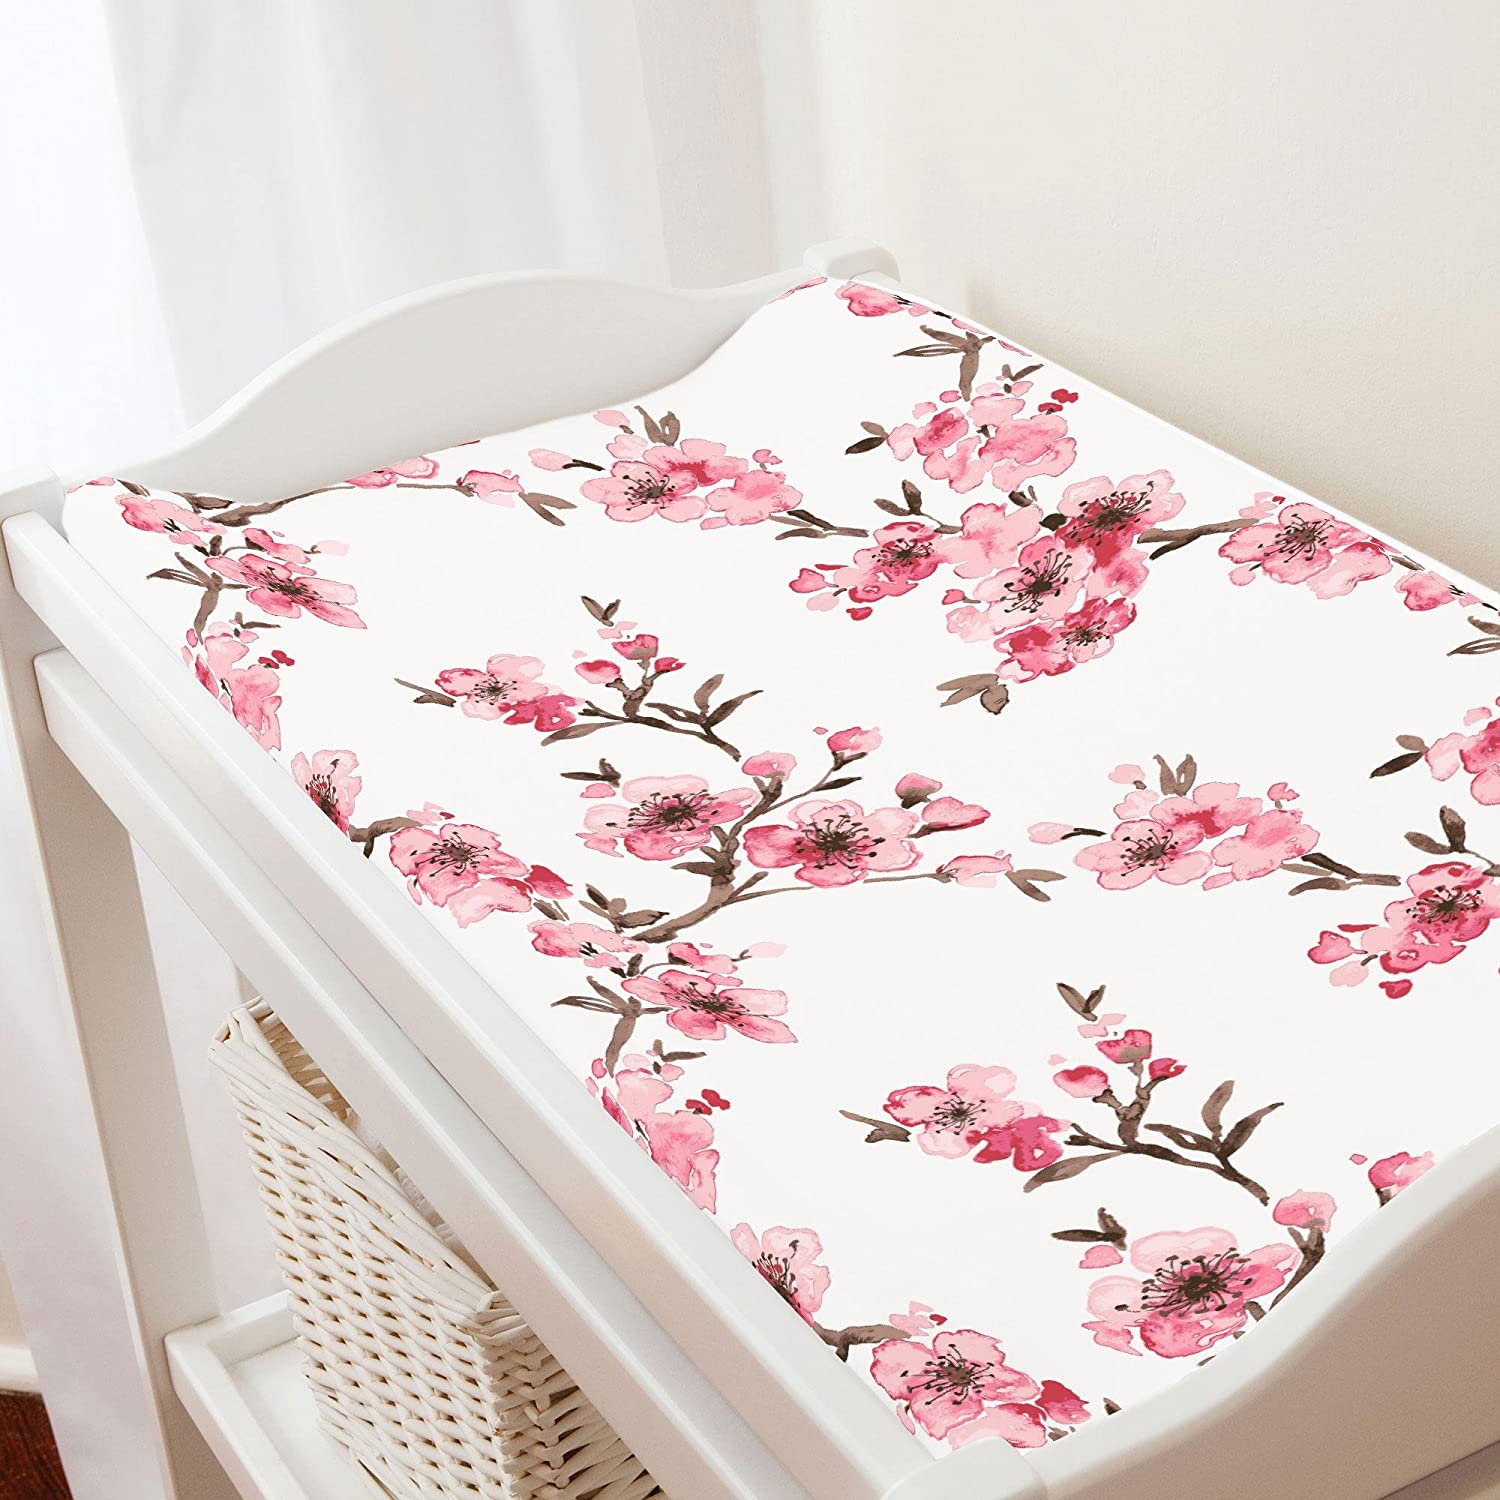 Carousel Designs Pink Cherry Blossom Changing Pad Cover - Organic 100% Cotton Change Pad Cover - Made in The USA